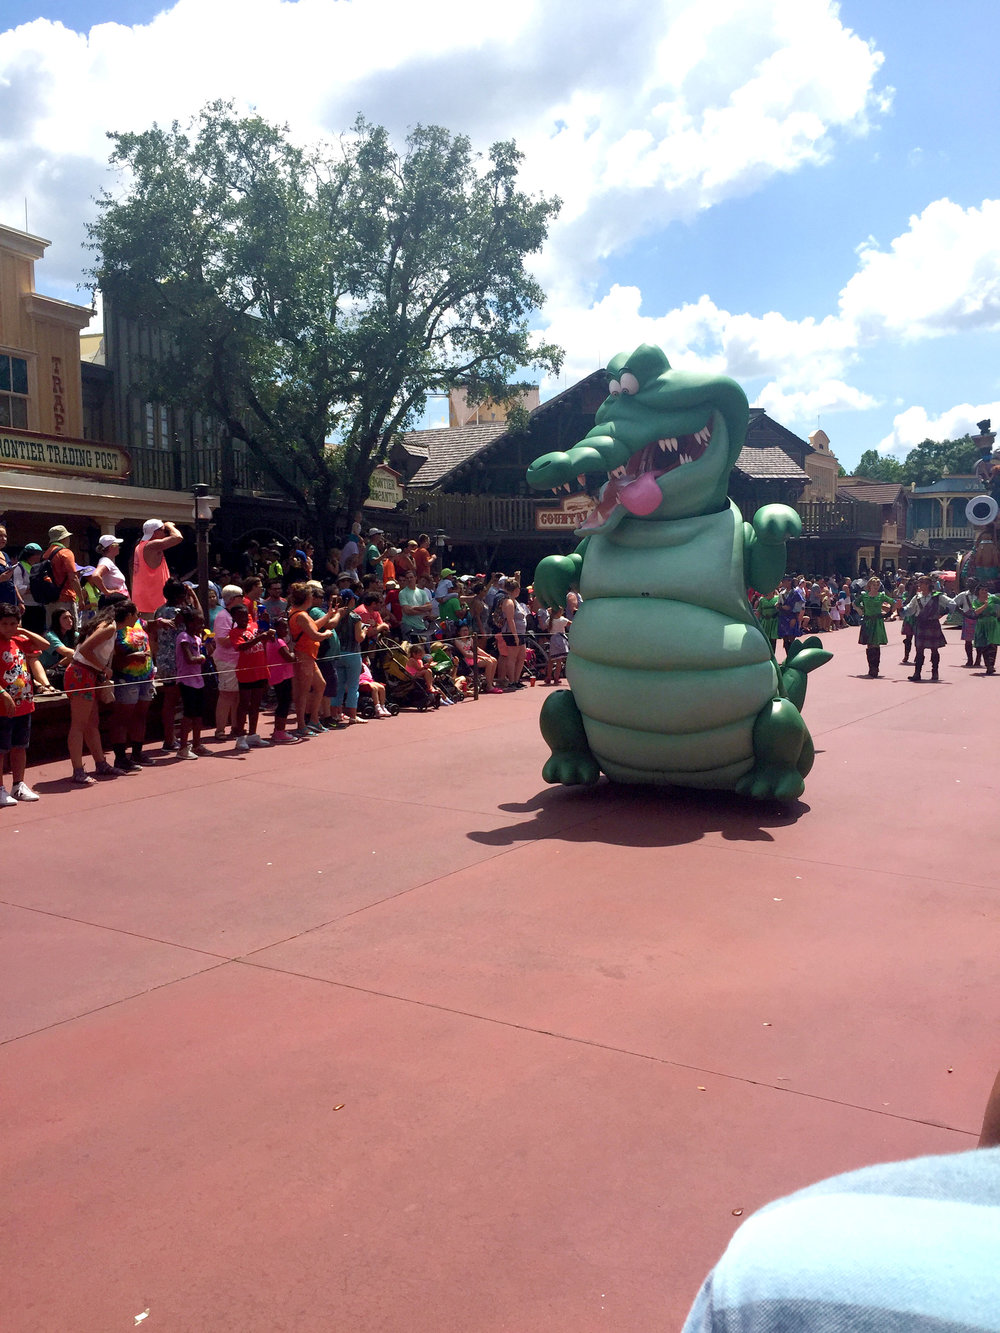 And wrapping up the Peter Pan section of the parade is the giant crocodile chasing after Mr. Smee.